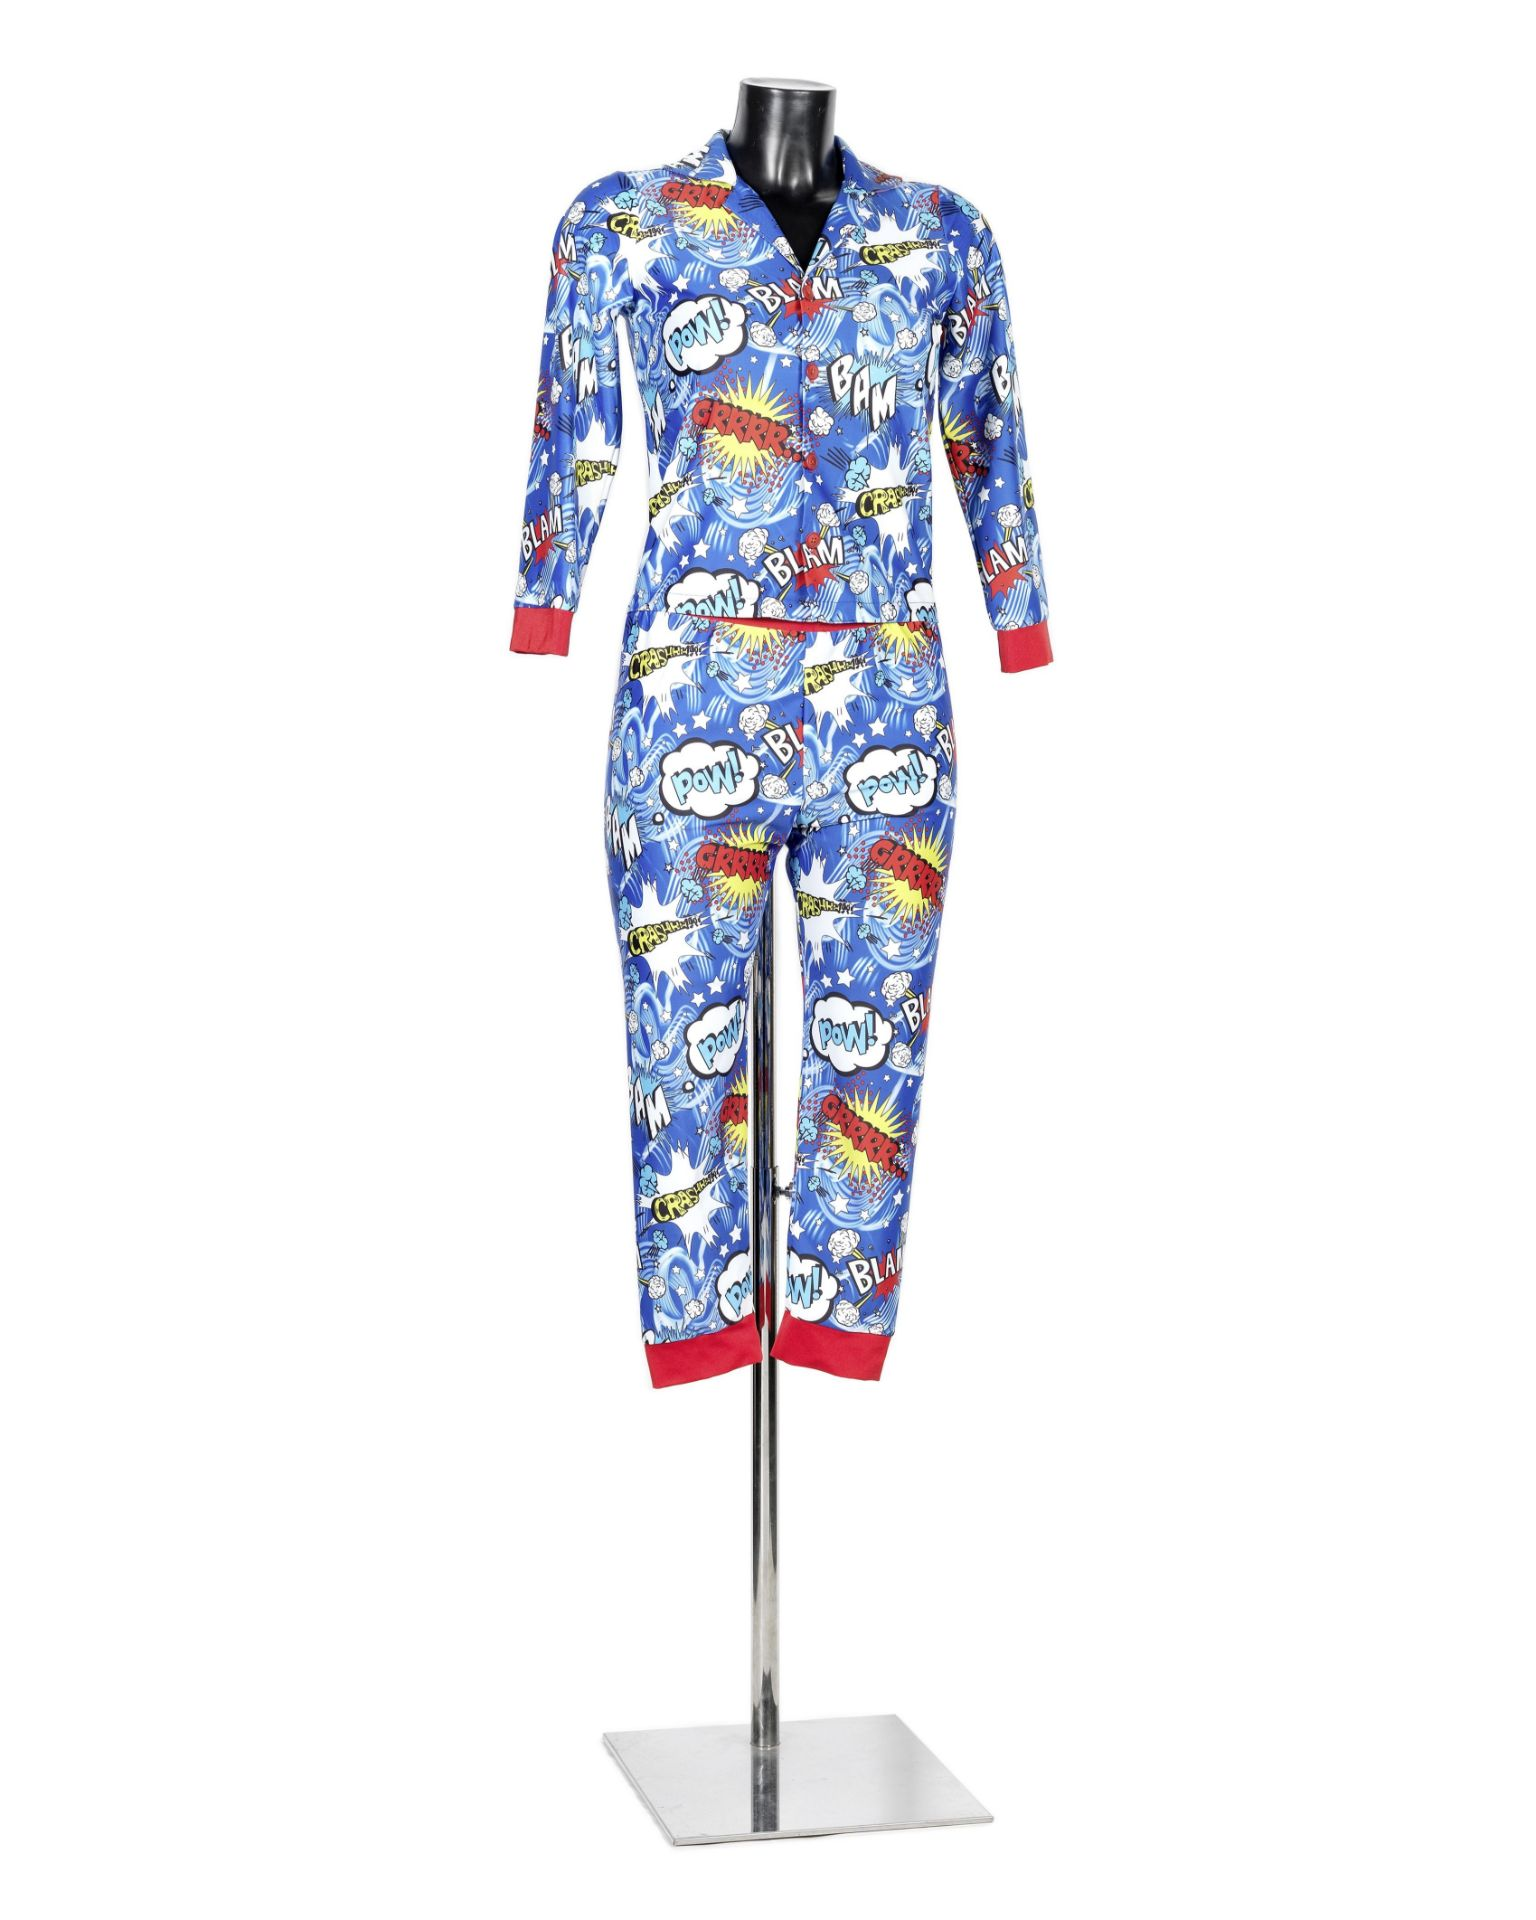 Killing Eve: An original set of pyjamas as worn by Jodie Comer for her role as 'Villanelle', Sid ...